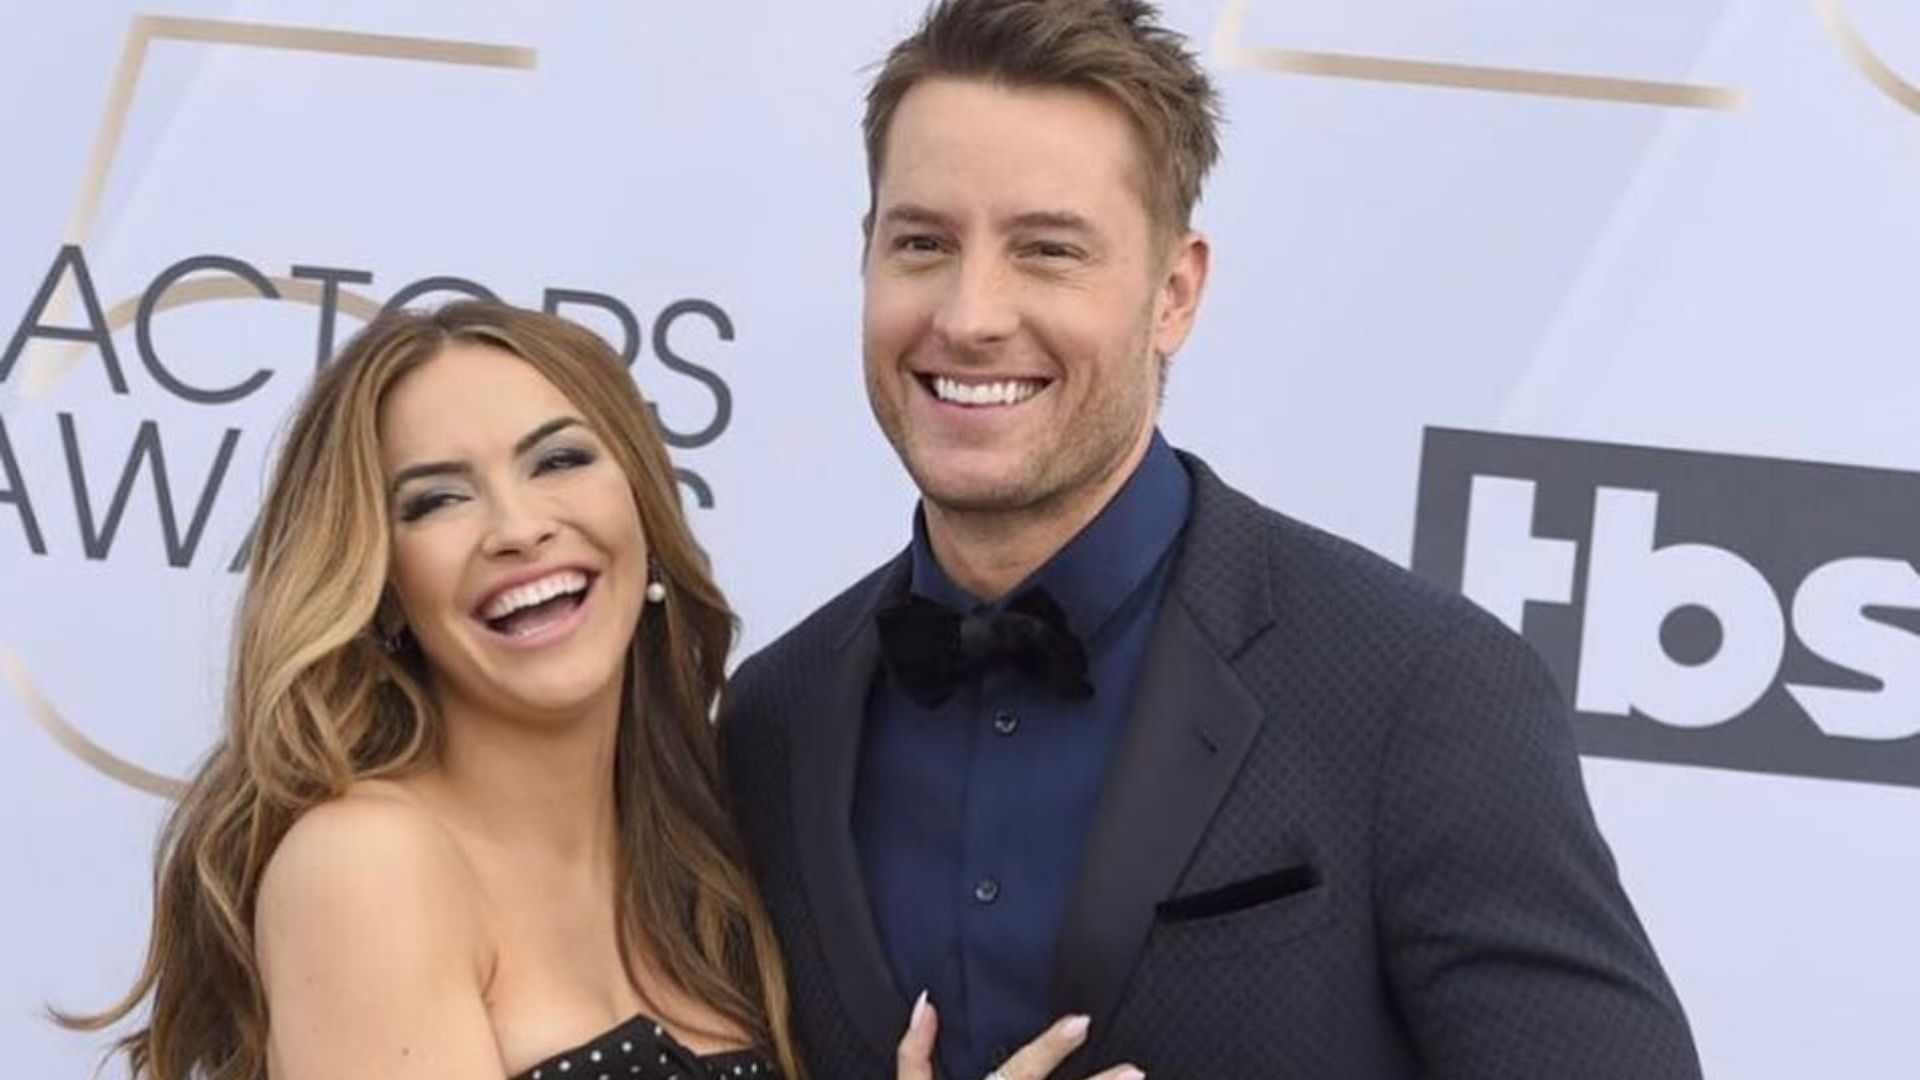 This Is Us Actor Justin Hartley Files For Divorce From His Wife Of Two Years